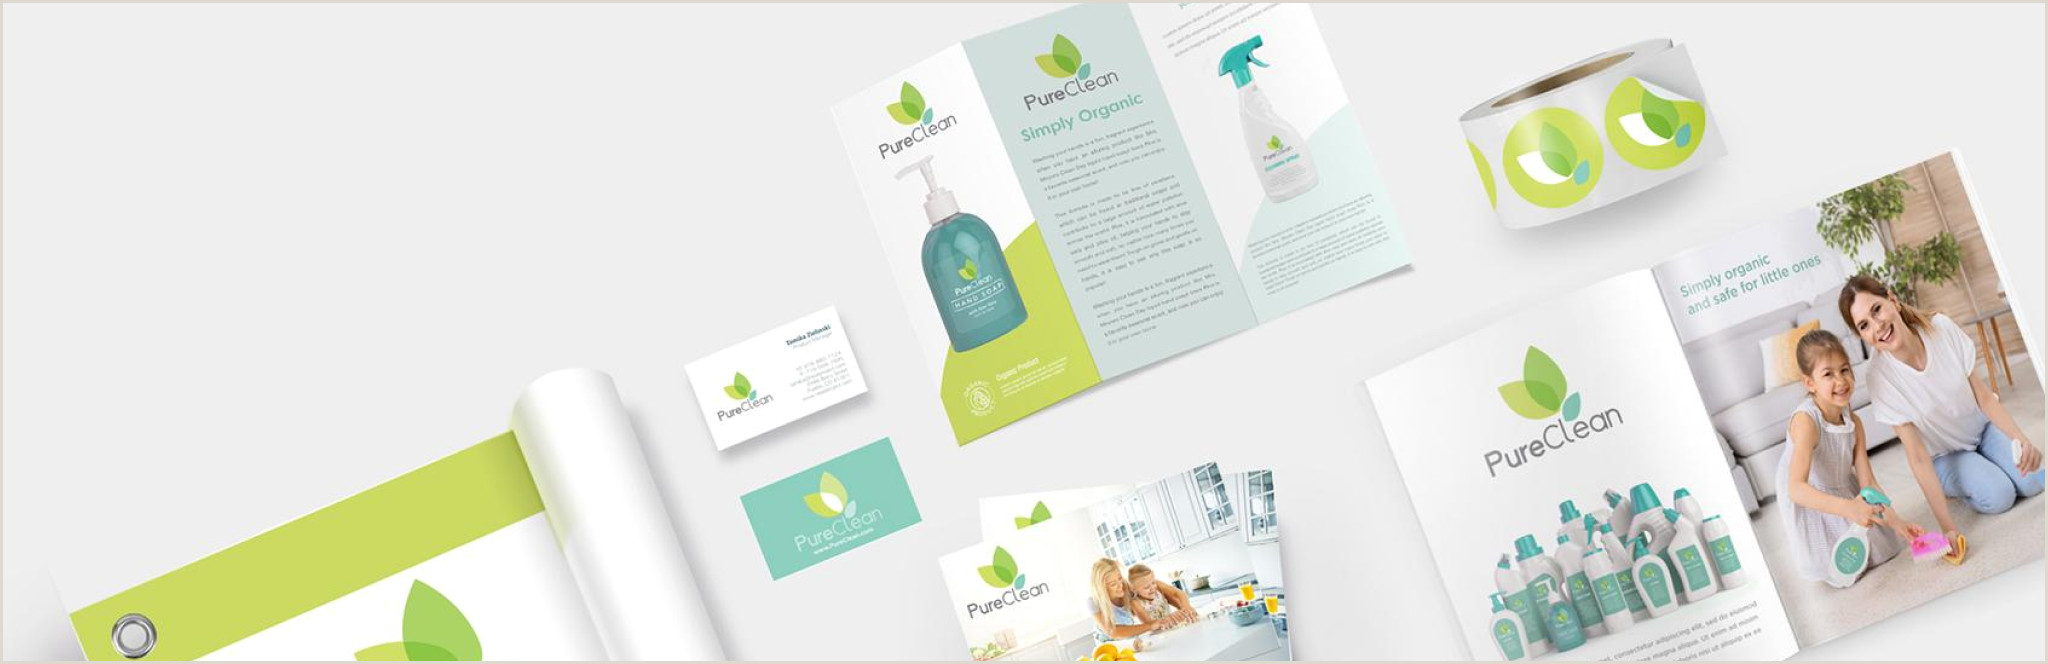 Best Professional Business Cards Printplace High Quality Line Printing Services